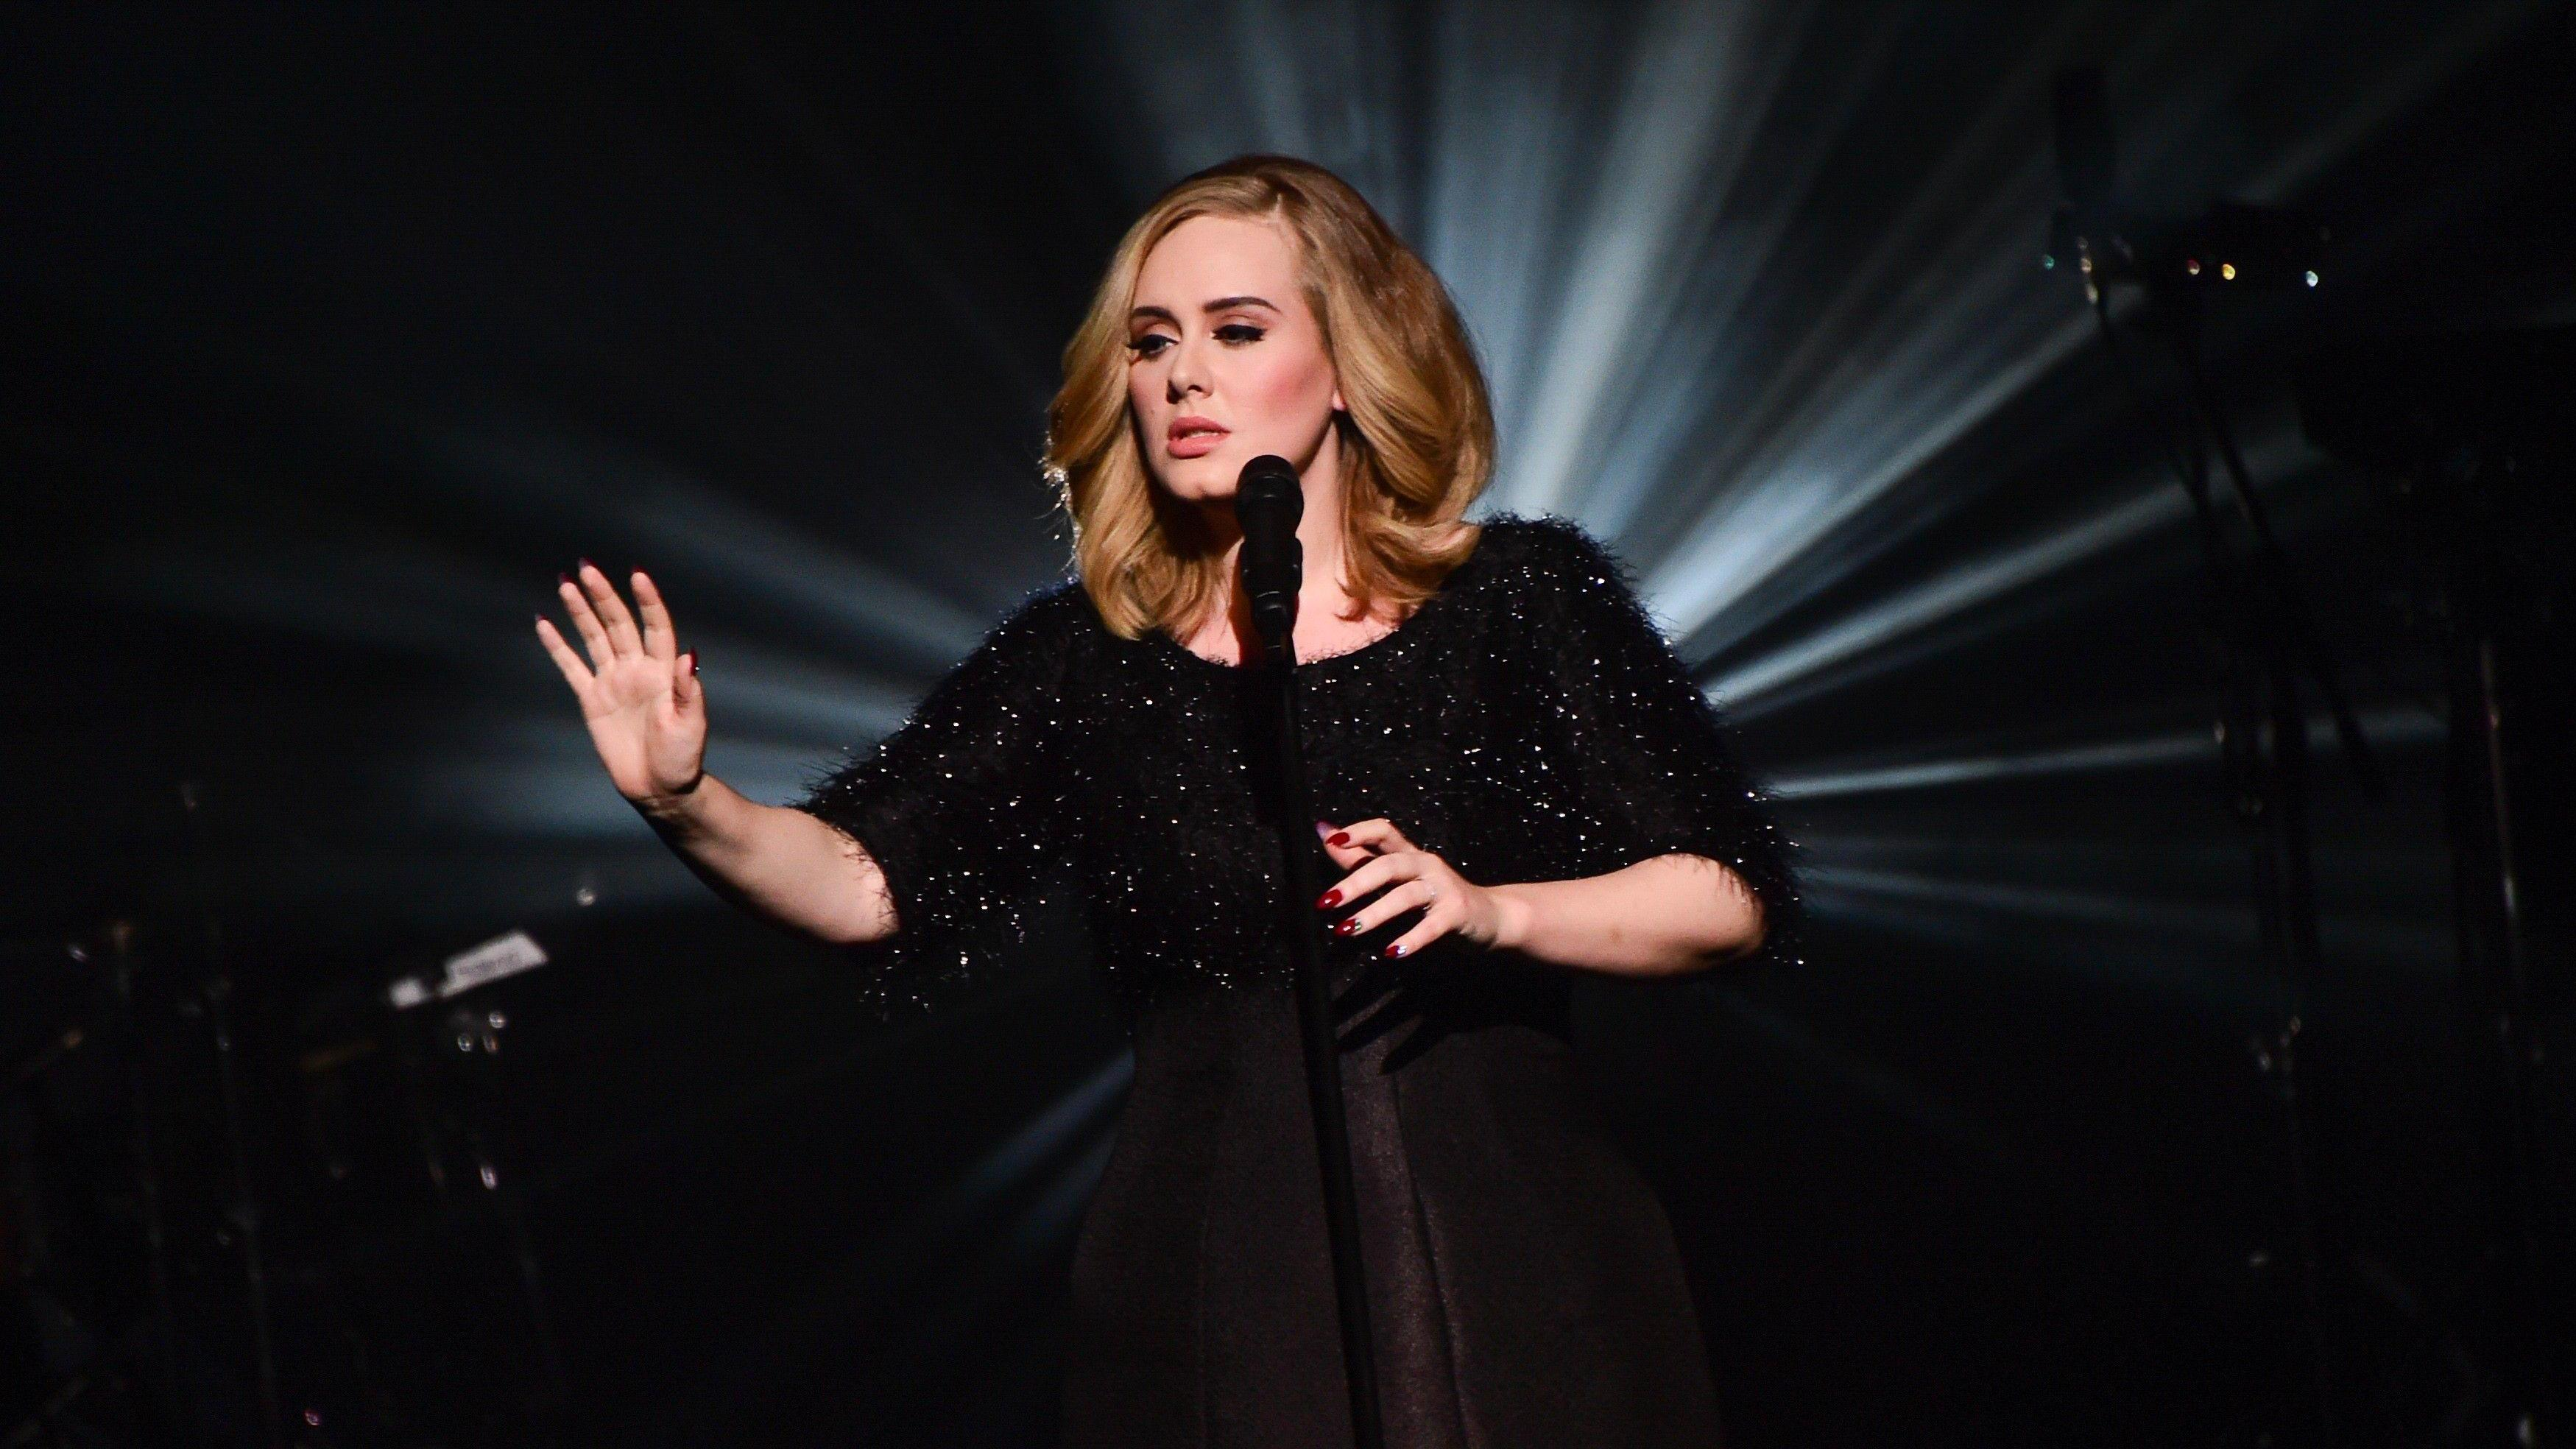 Adele Breaks Single-Week U.S. Album Sales Record in Four Days